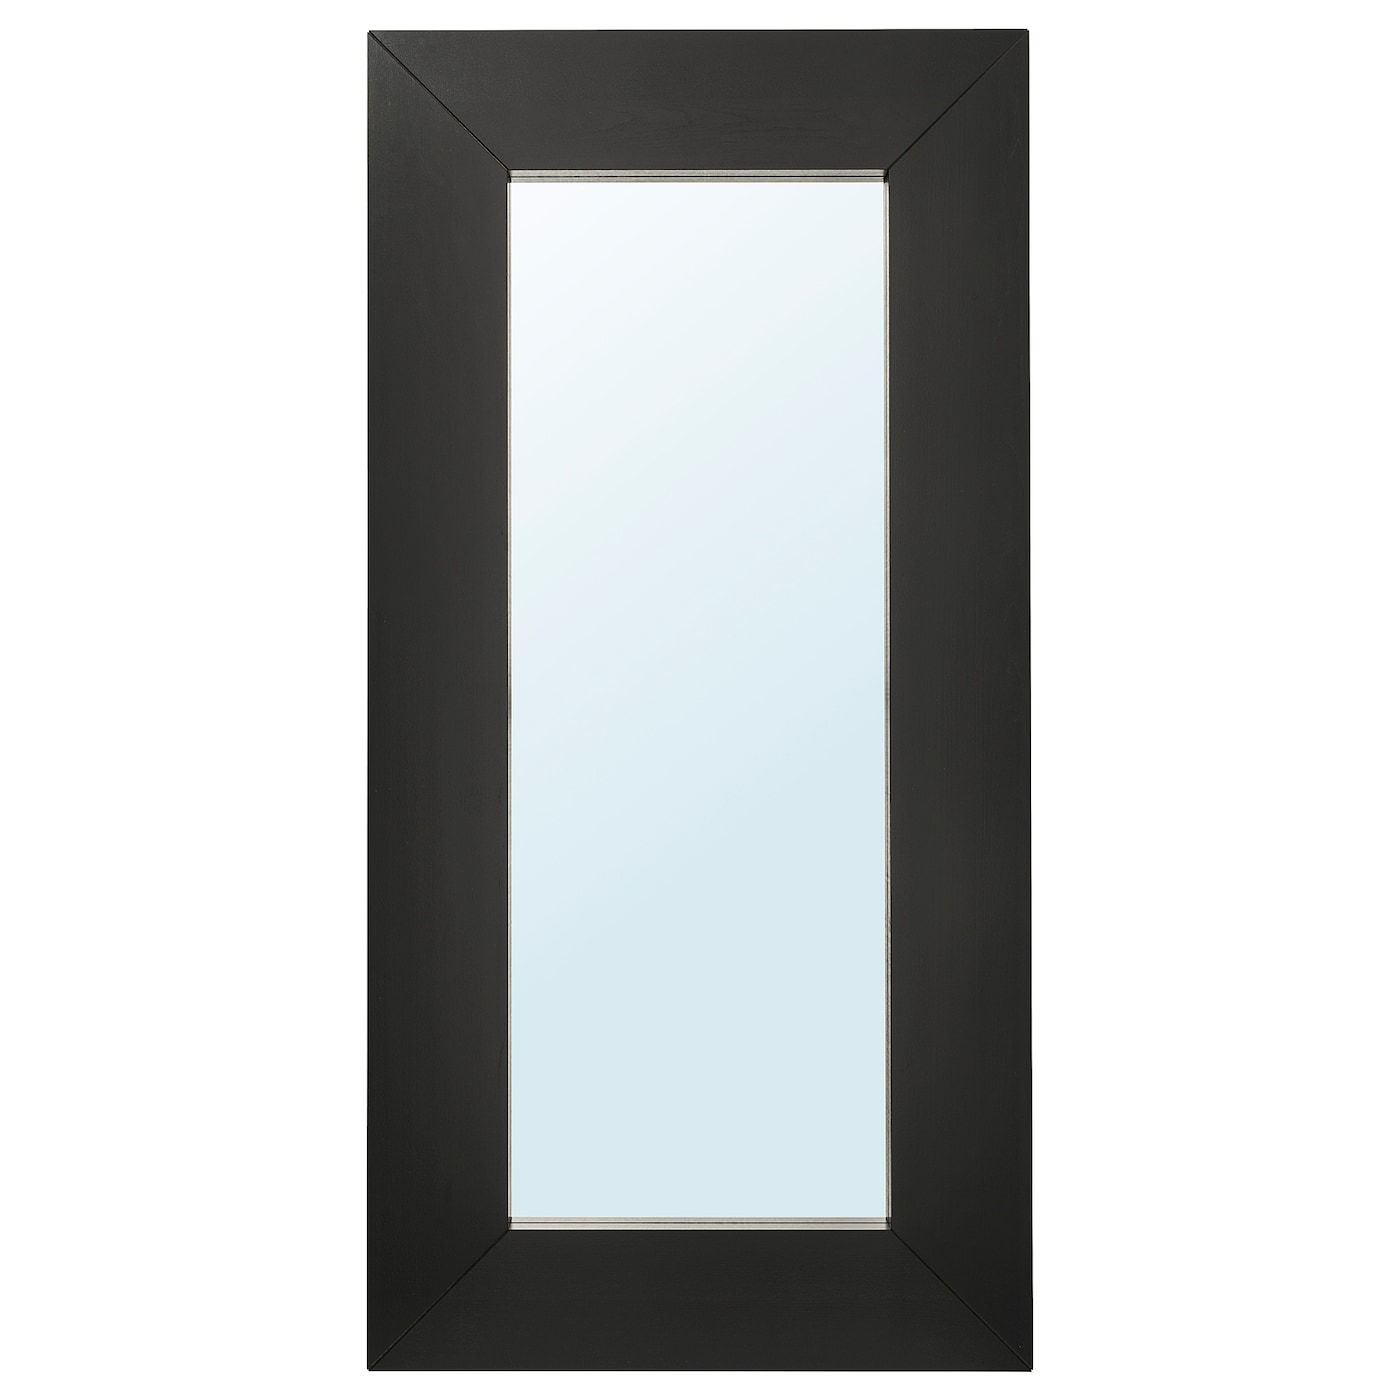 IKEA MONGSTAD mirror Full-length mirror. Can be hung horizontally or vertically.